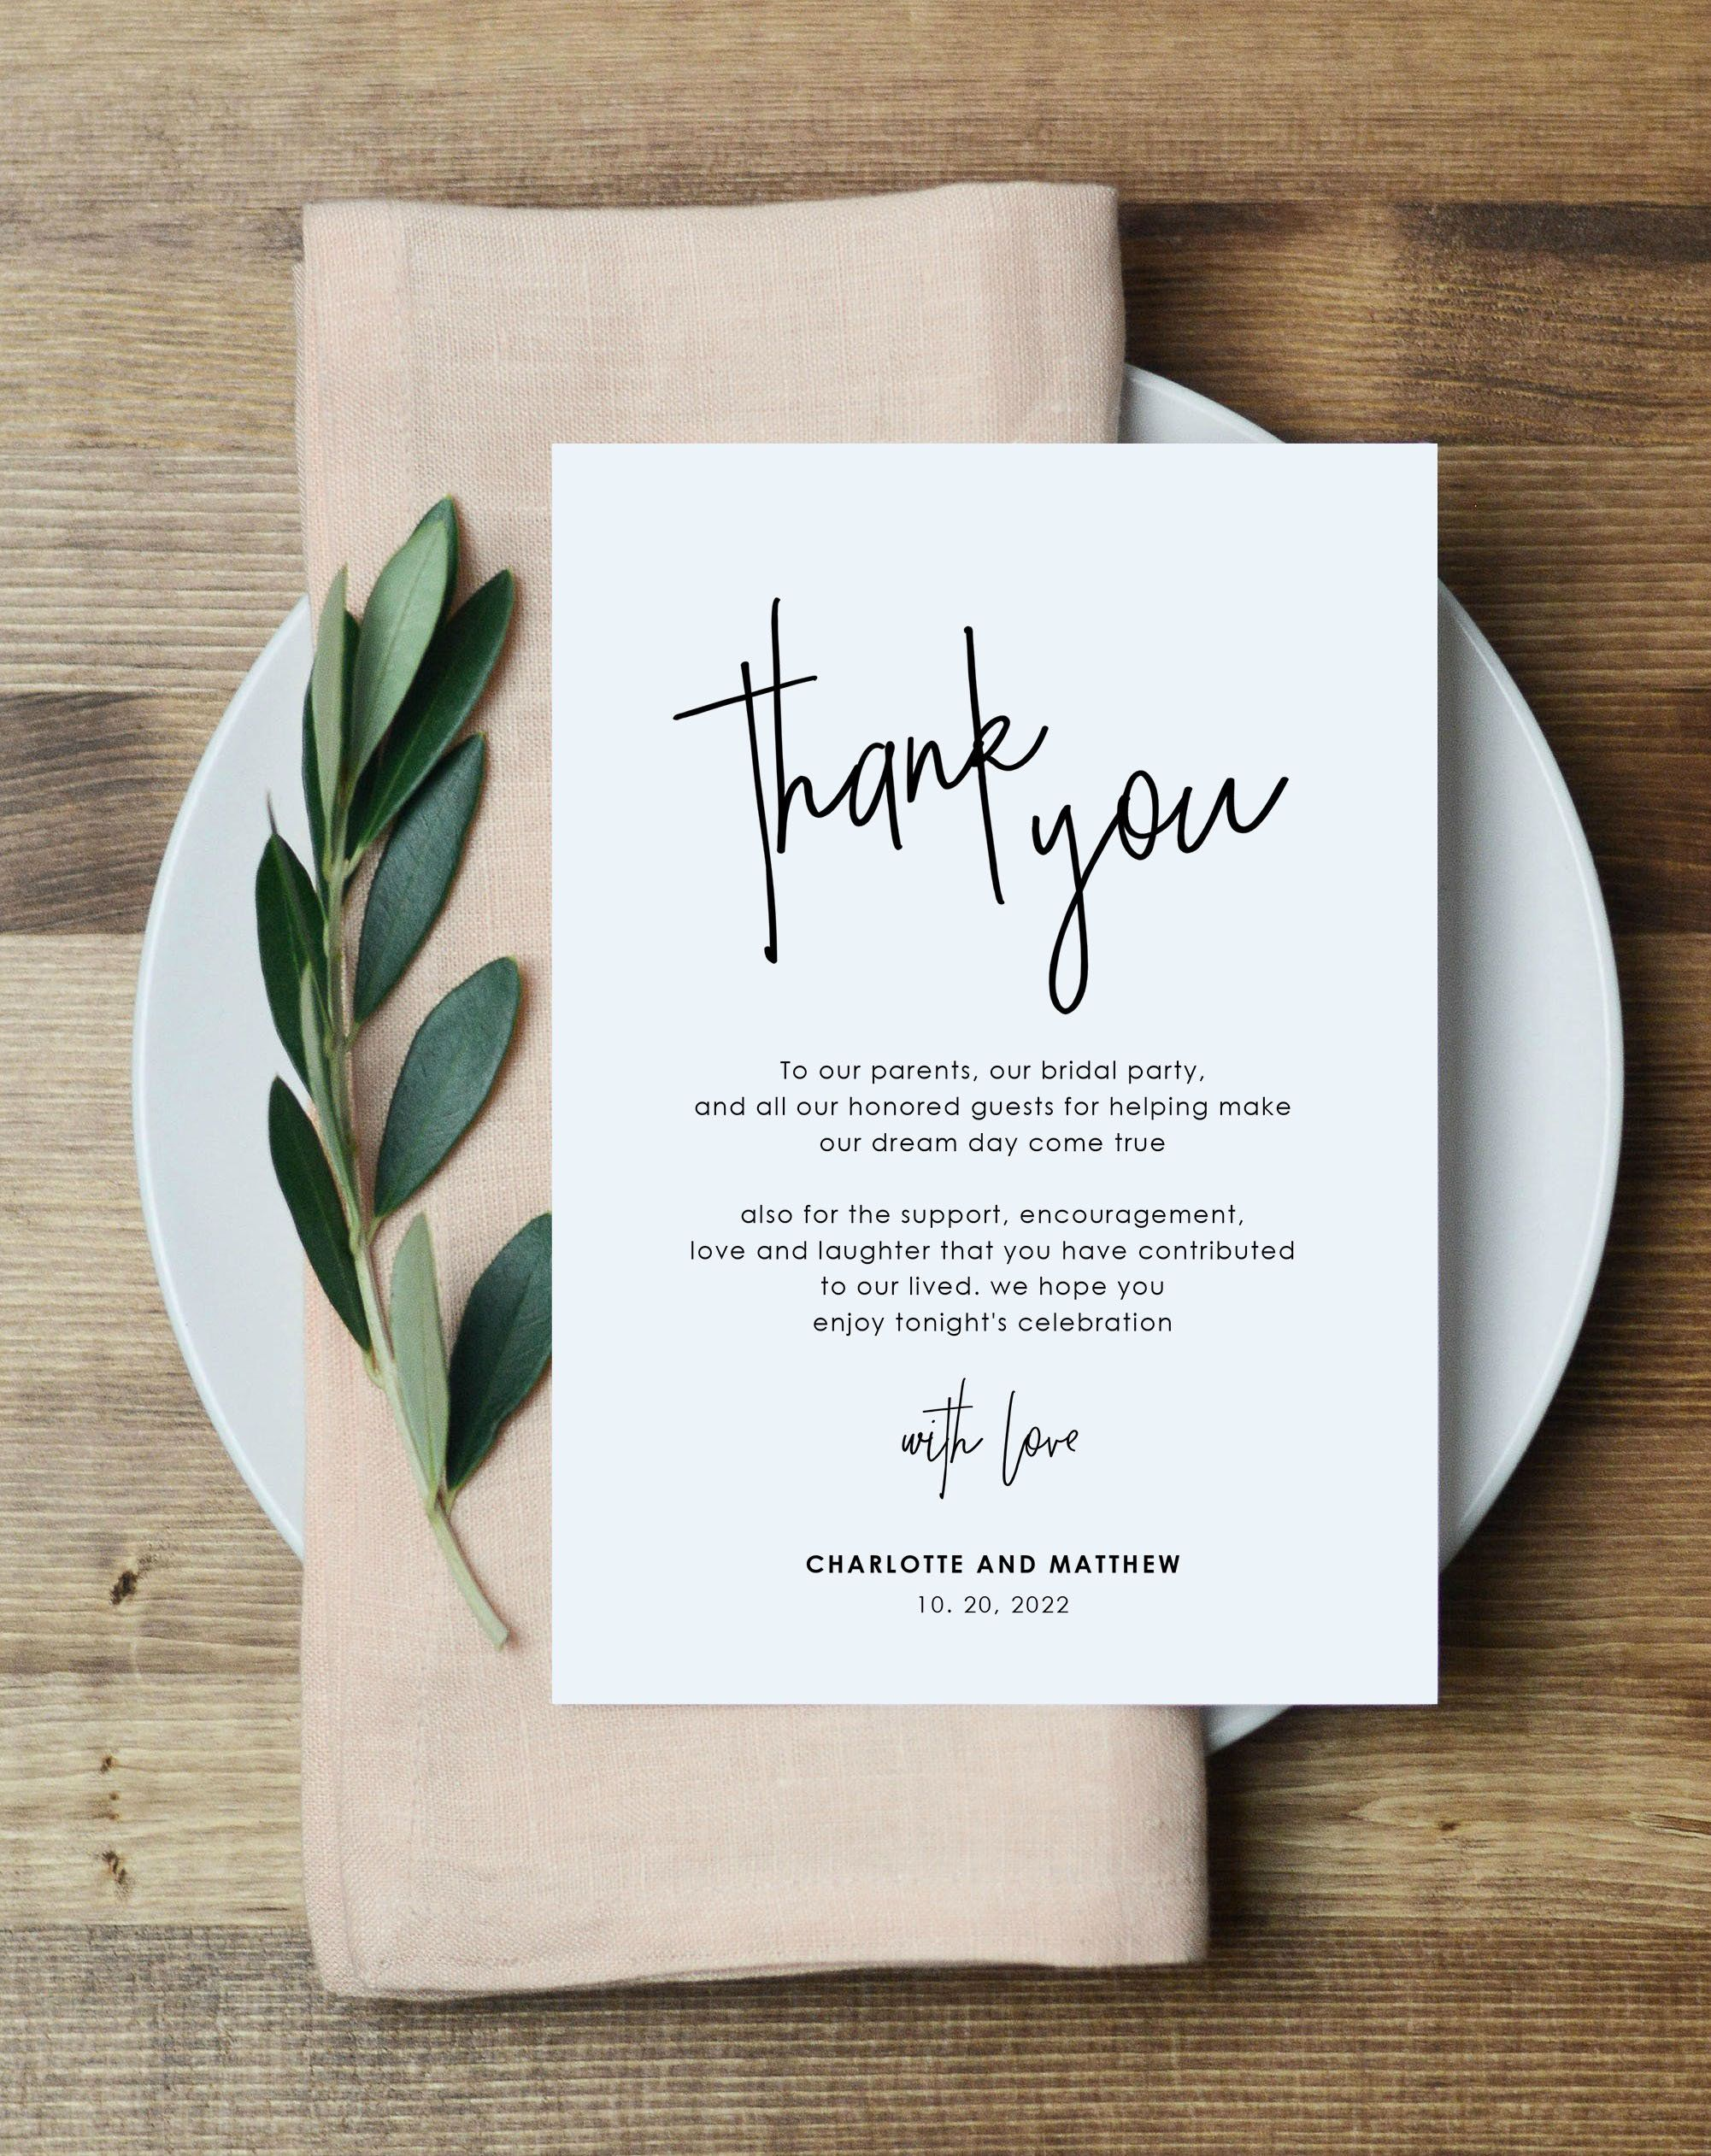 Modern Wedding Thank You Note Printable Thank You Card Template Instant Download Edit With Templett Wlp Pen 2196 In 2021 Thank You Card Template Printable Thank You Cards Wedding Thank You Wedding thank you card template